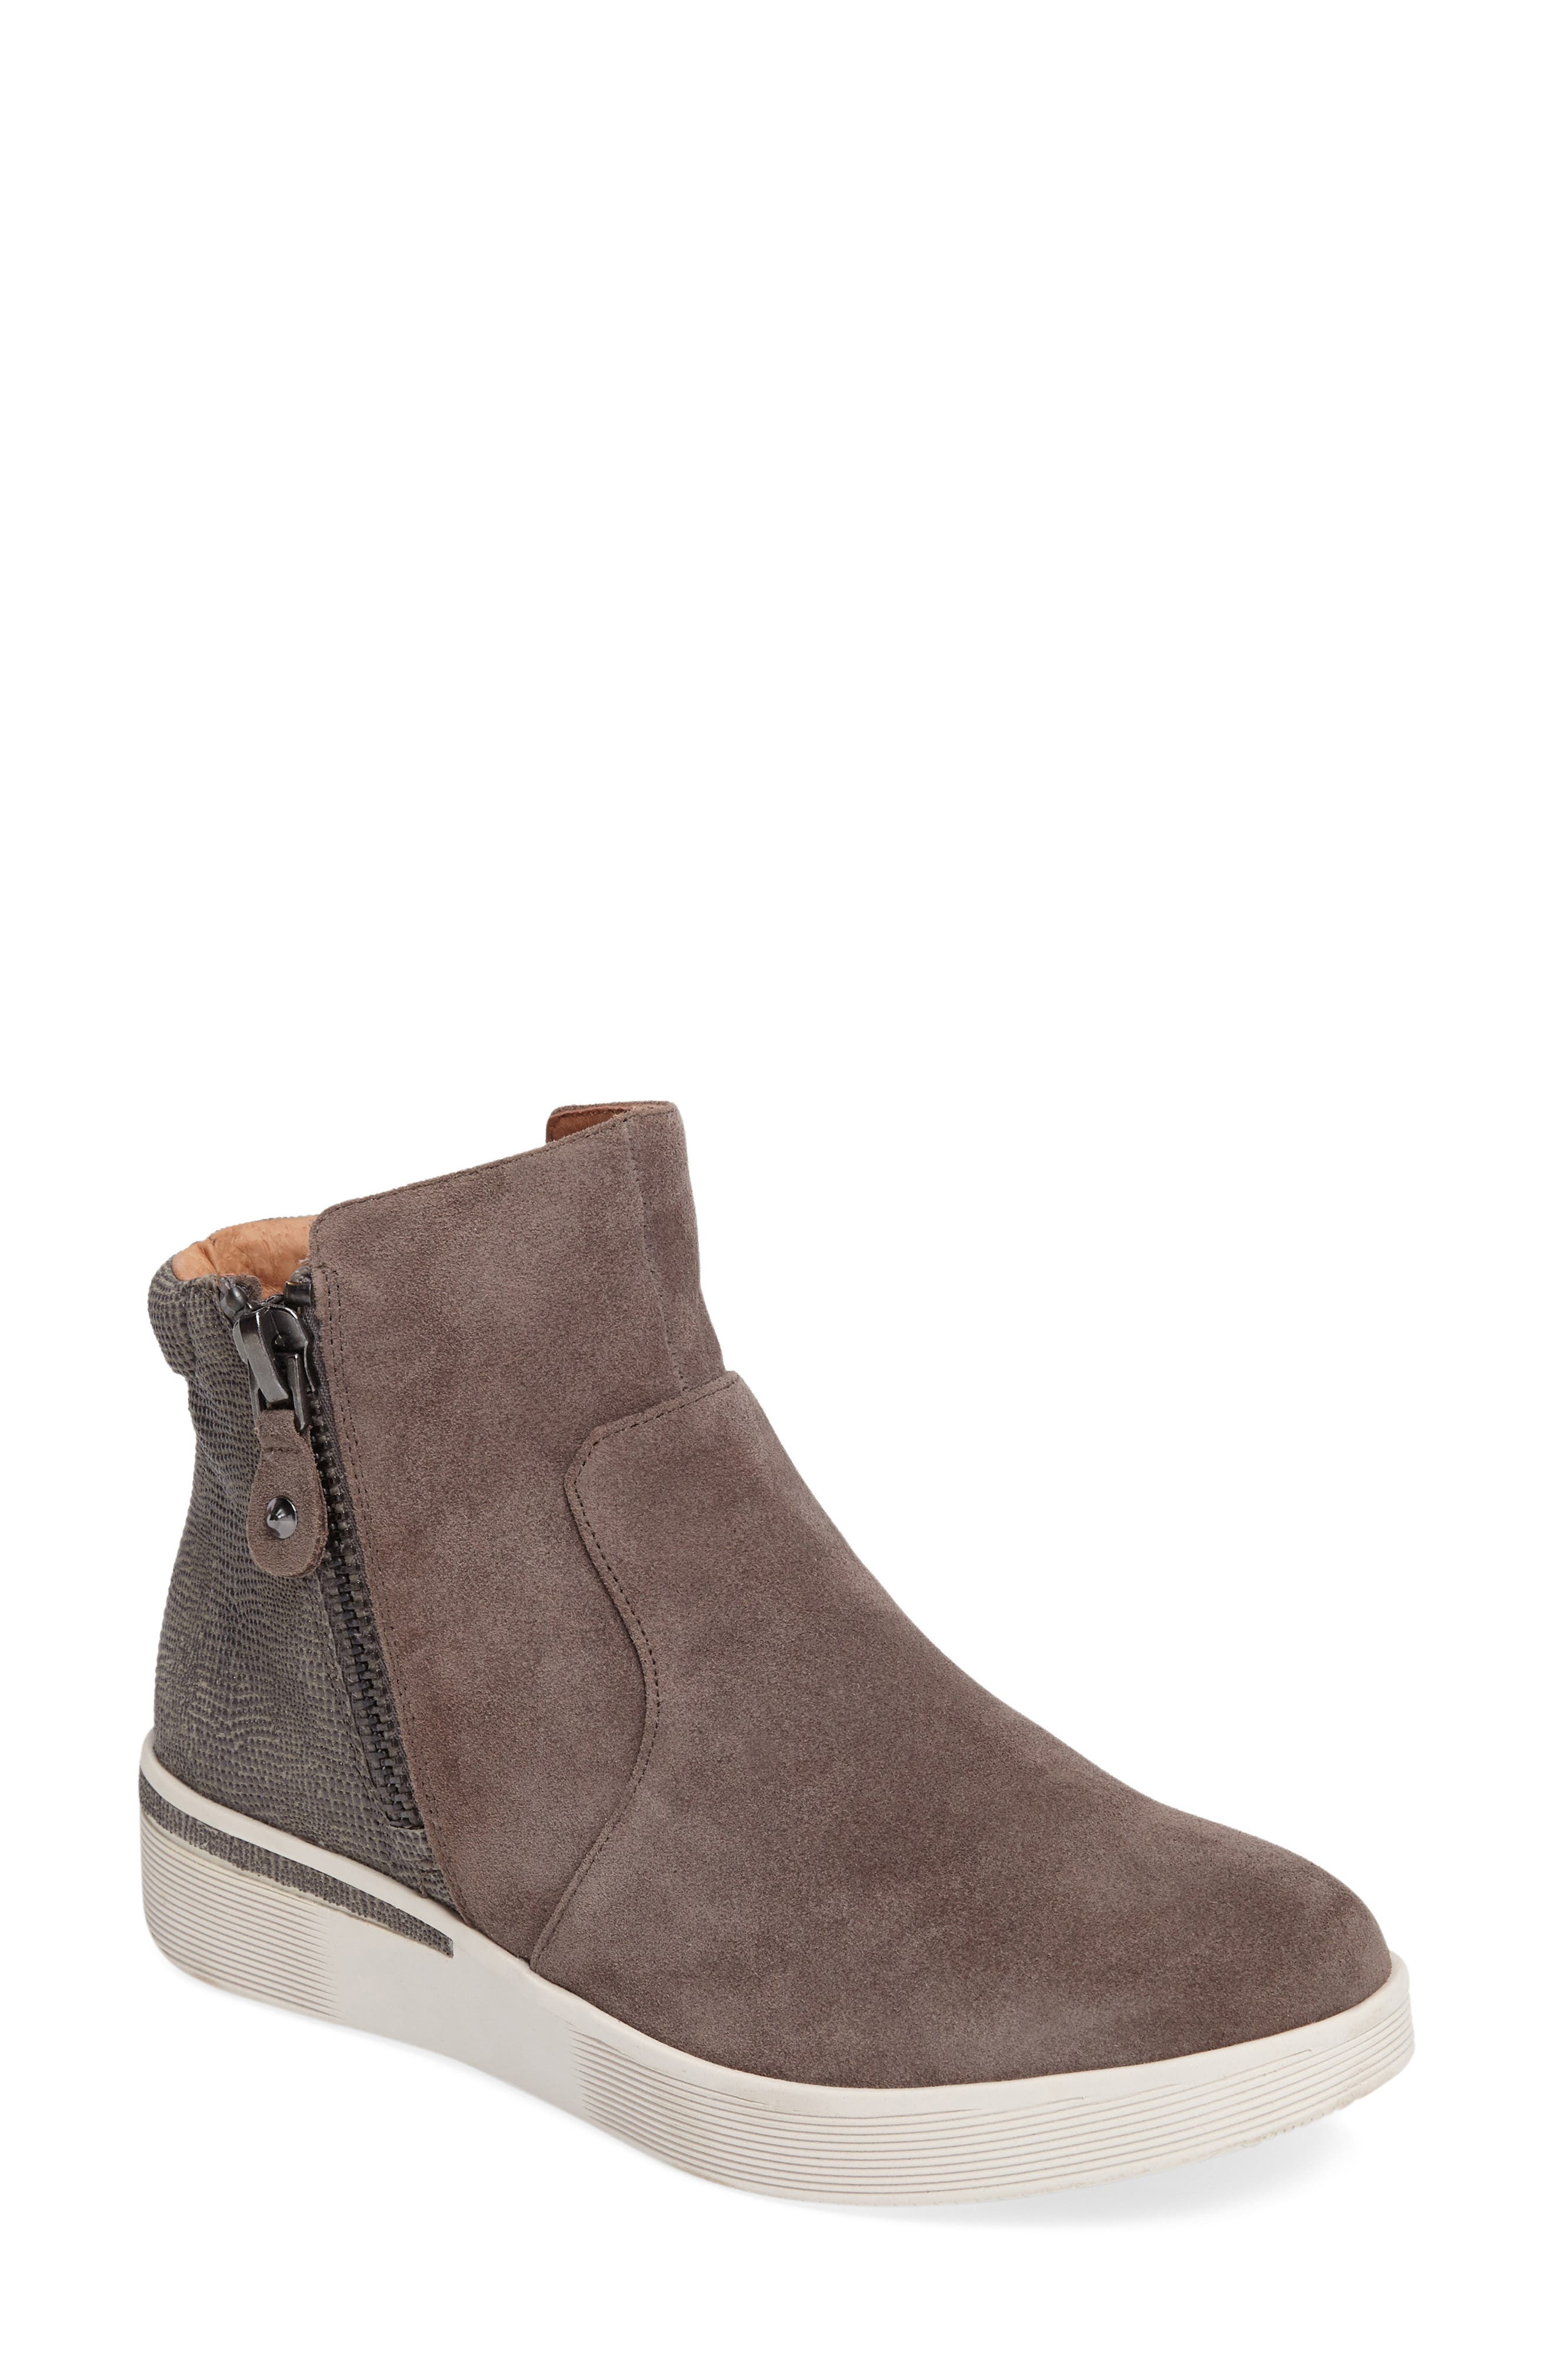 'Harper' Sneaker Bootie,                         Main,                         color, GREY LEATHER